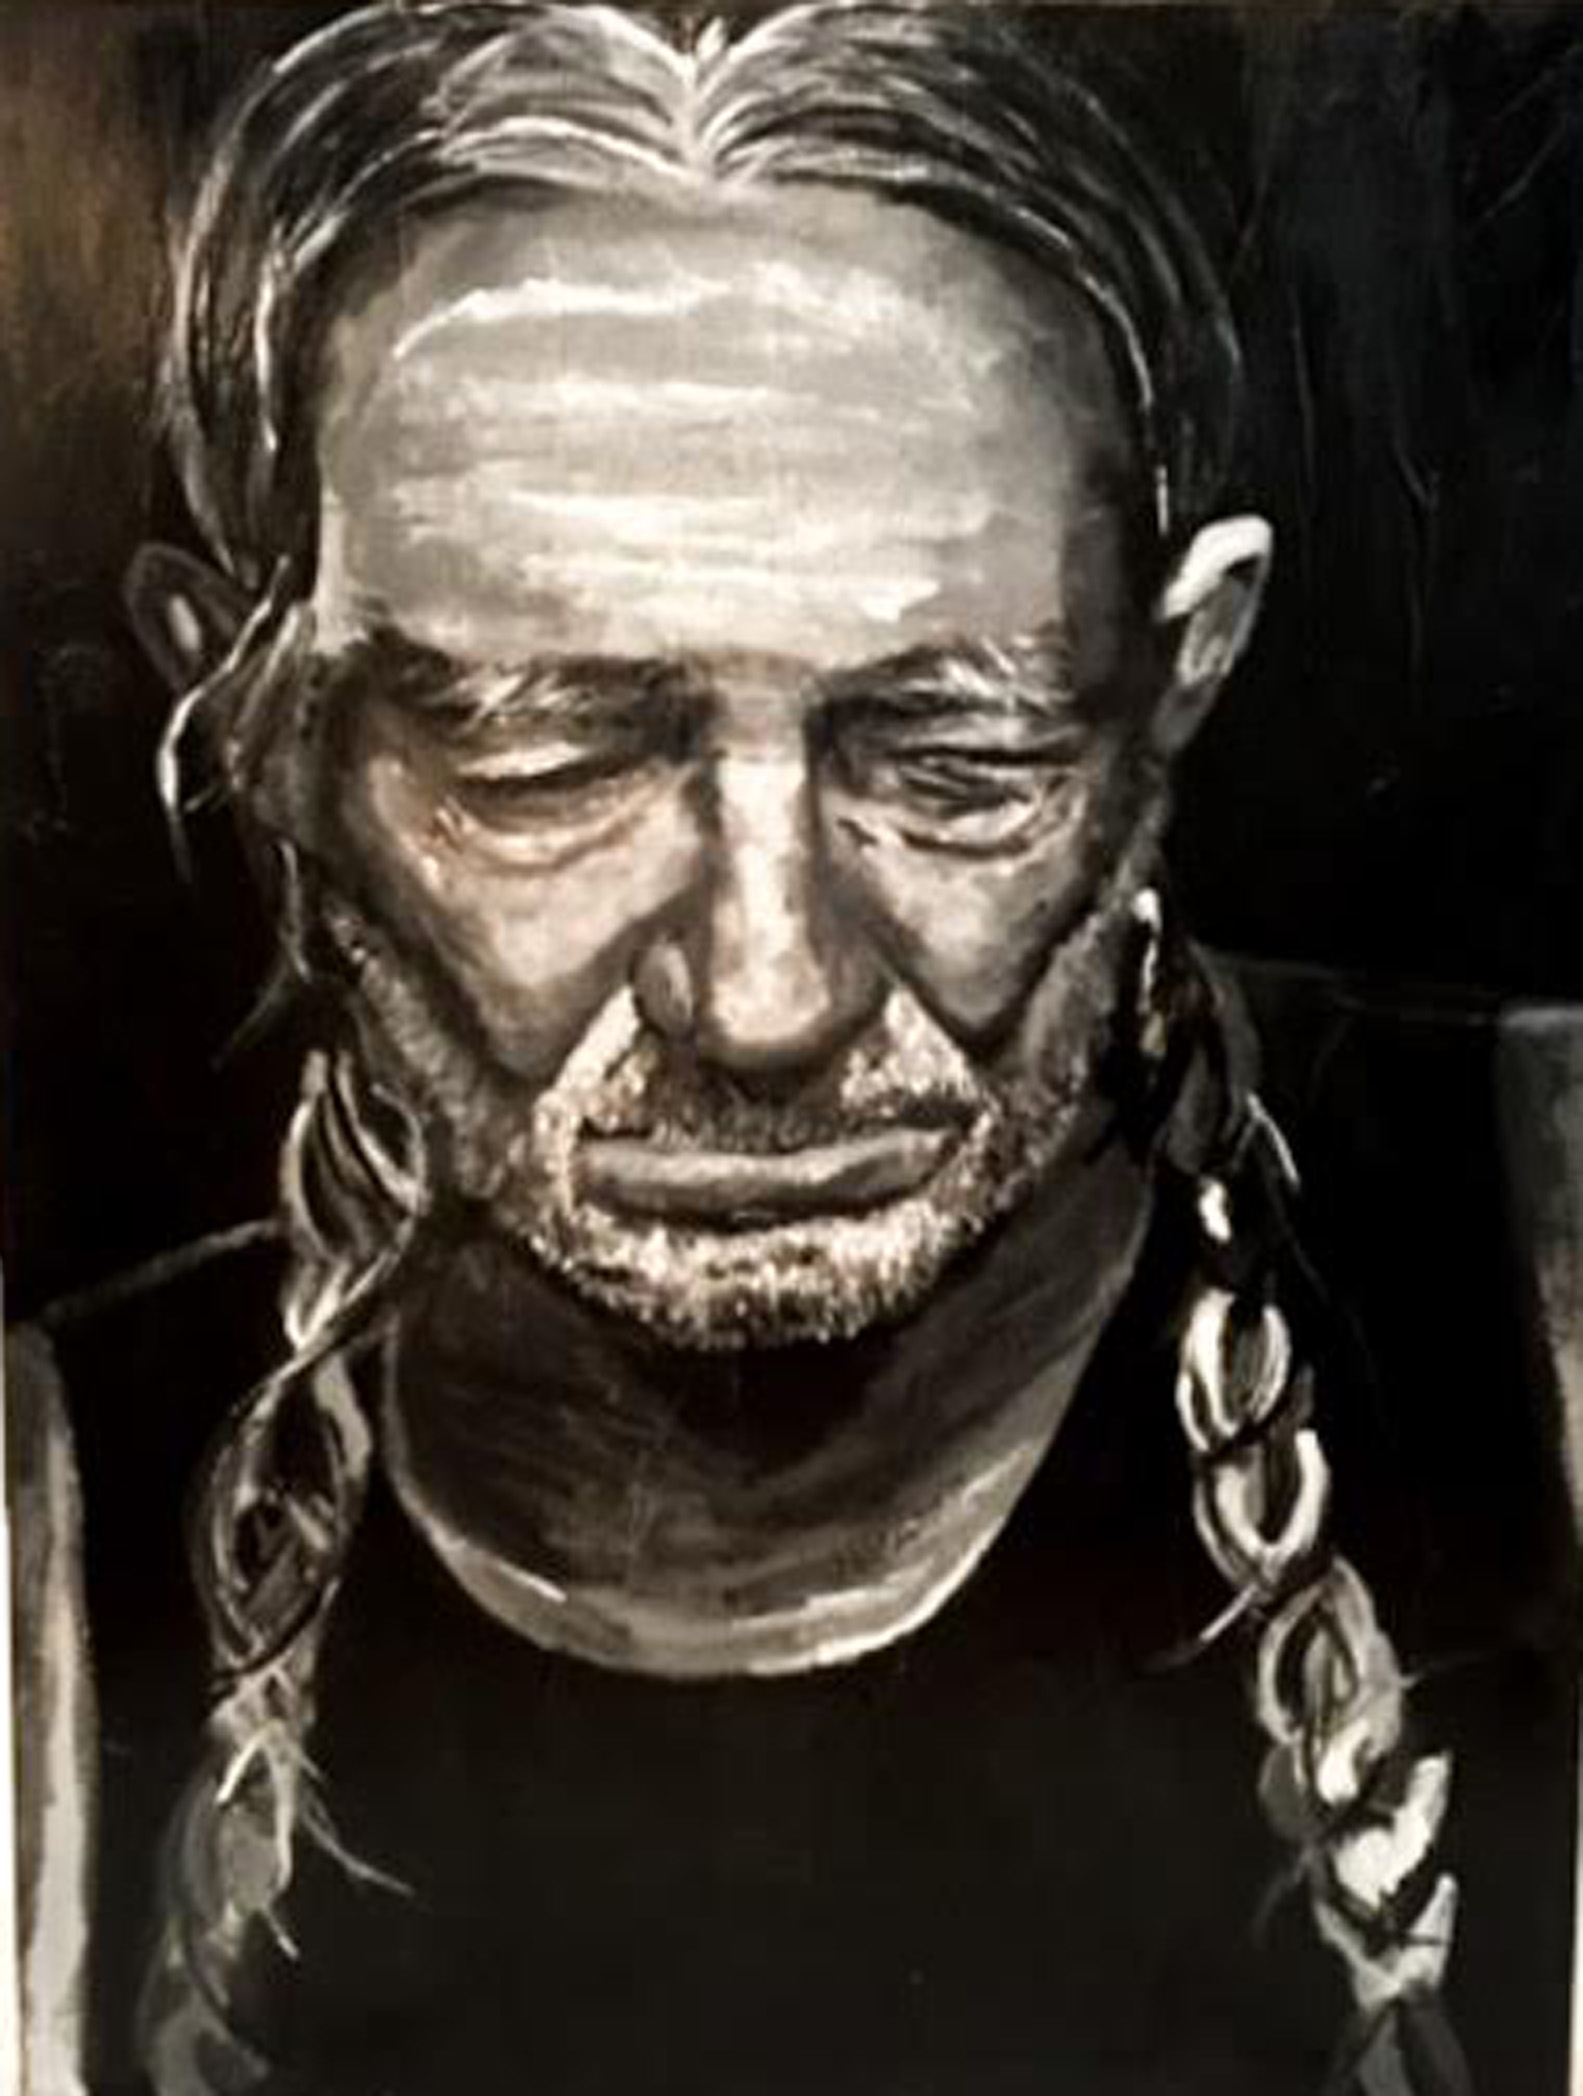 PENSIVE WILLIE artwork by Amy Tyndell - art listed for sale on Artplode